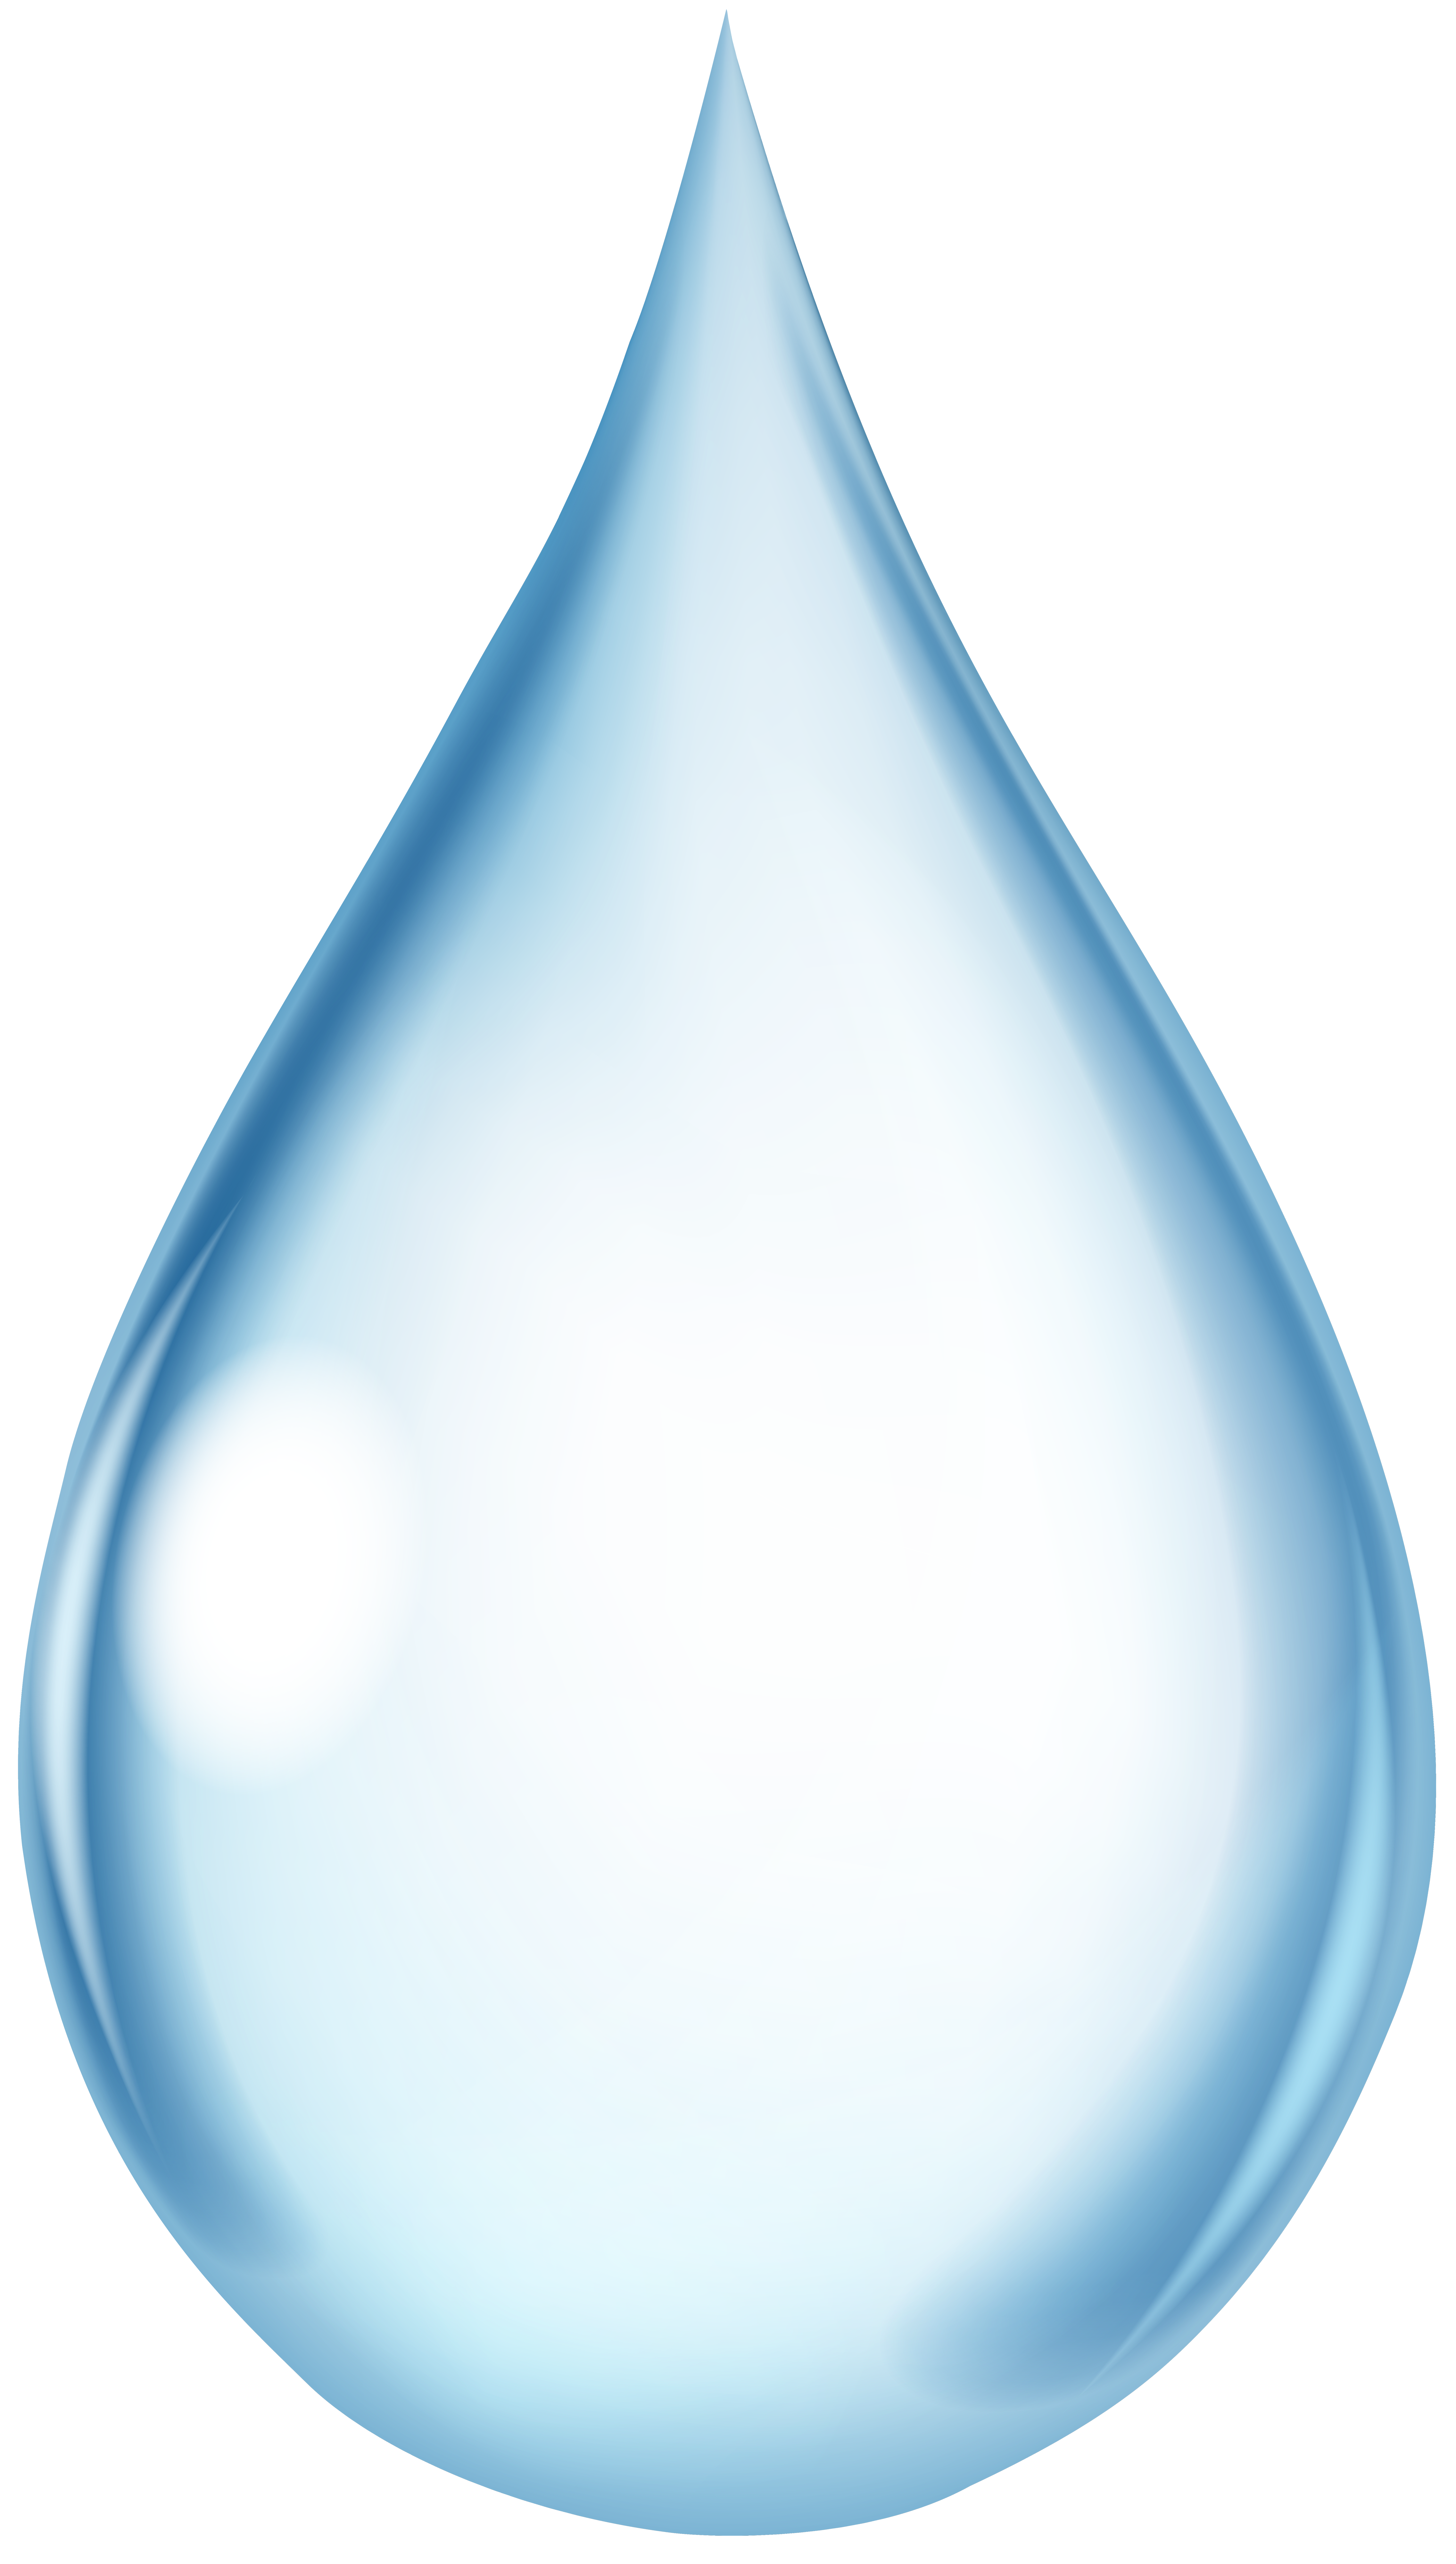 Water Drop Transparent Png Clip Art Image Gallery Yopriceville High Quality Images And Transparent Png Fr Water Droplets Art Water Drop Images Water Drops